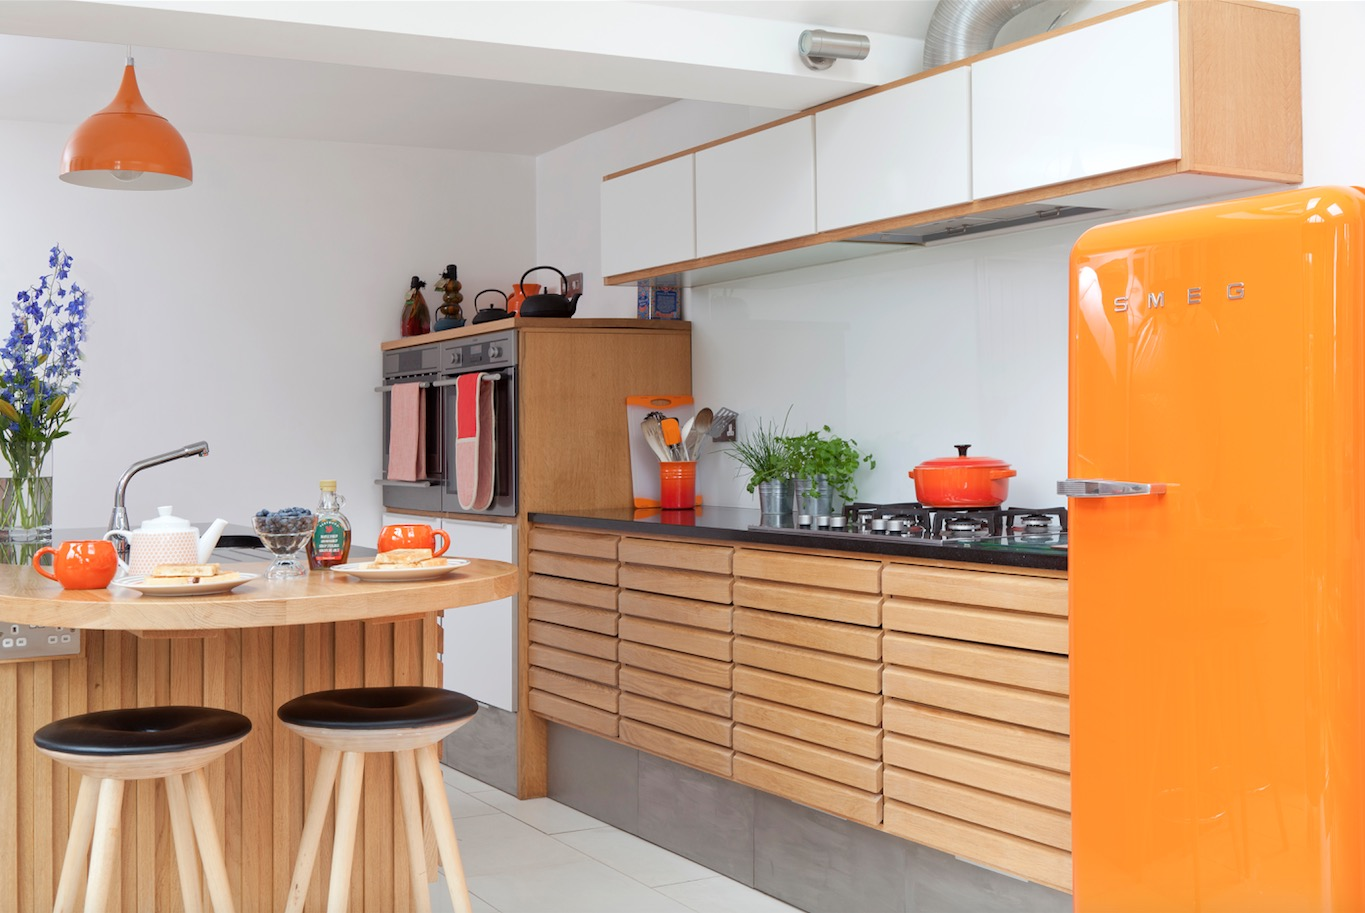 Kitchen Renovation In Waddingham Using Retro Danish Styling And An Orange  Smeg Fridge